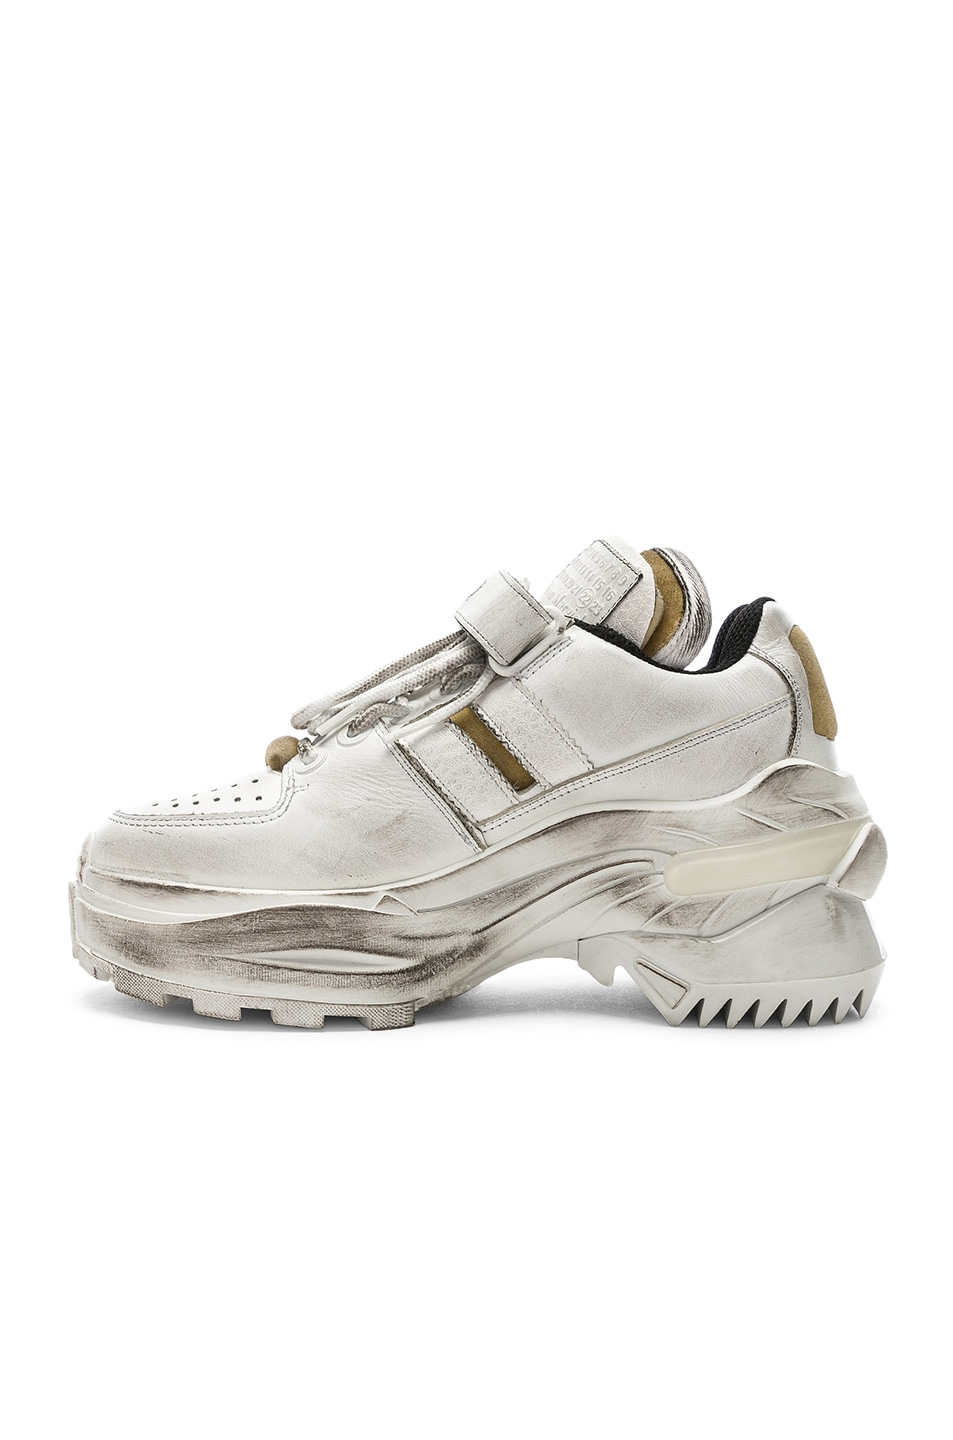 Image 5 of Maison Margiela Leather Sneakers in White & Black Raven